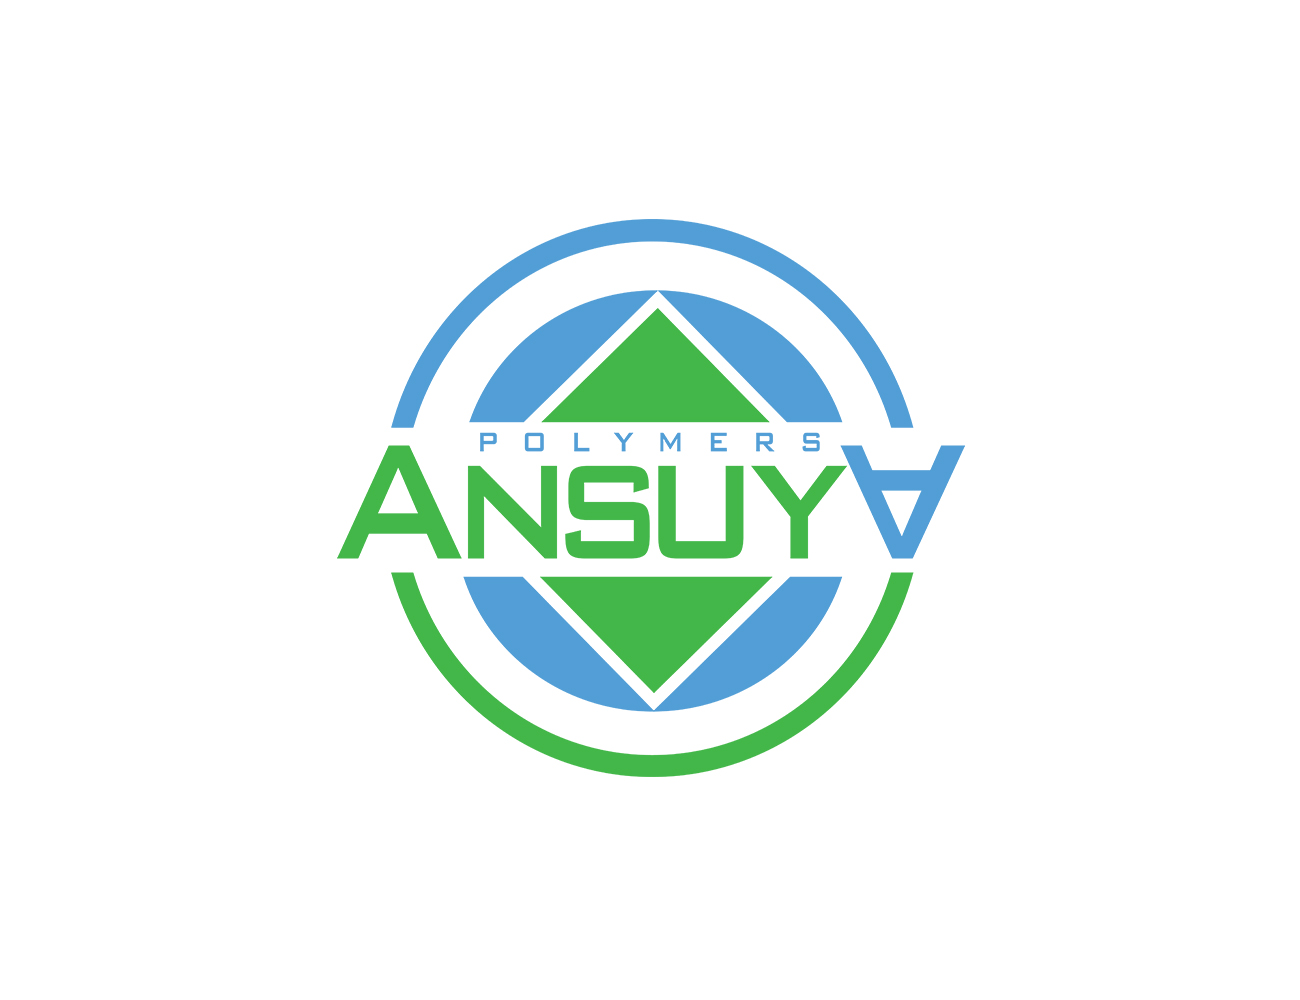 Modern upmarket logo design for ansuya polymers by goranvisnjic82 logo design by goranvisnjic82 for trade show logo design for a recycling and polymer trading company biocorpaavc Image collections